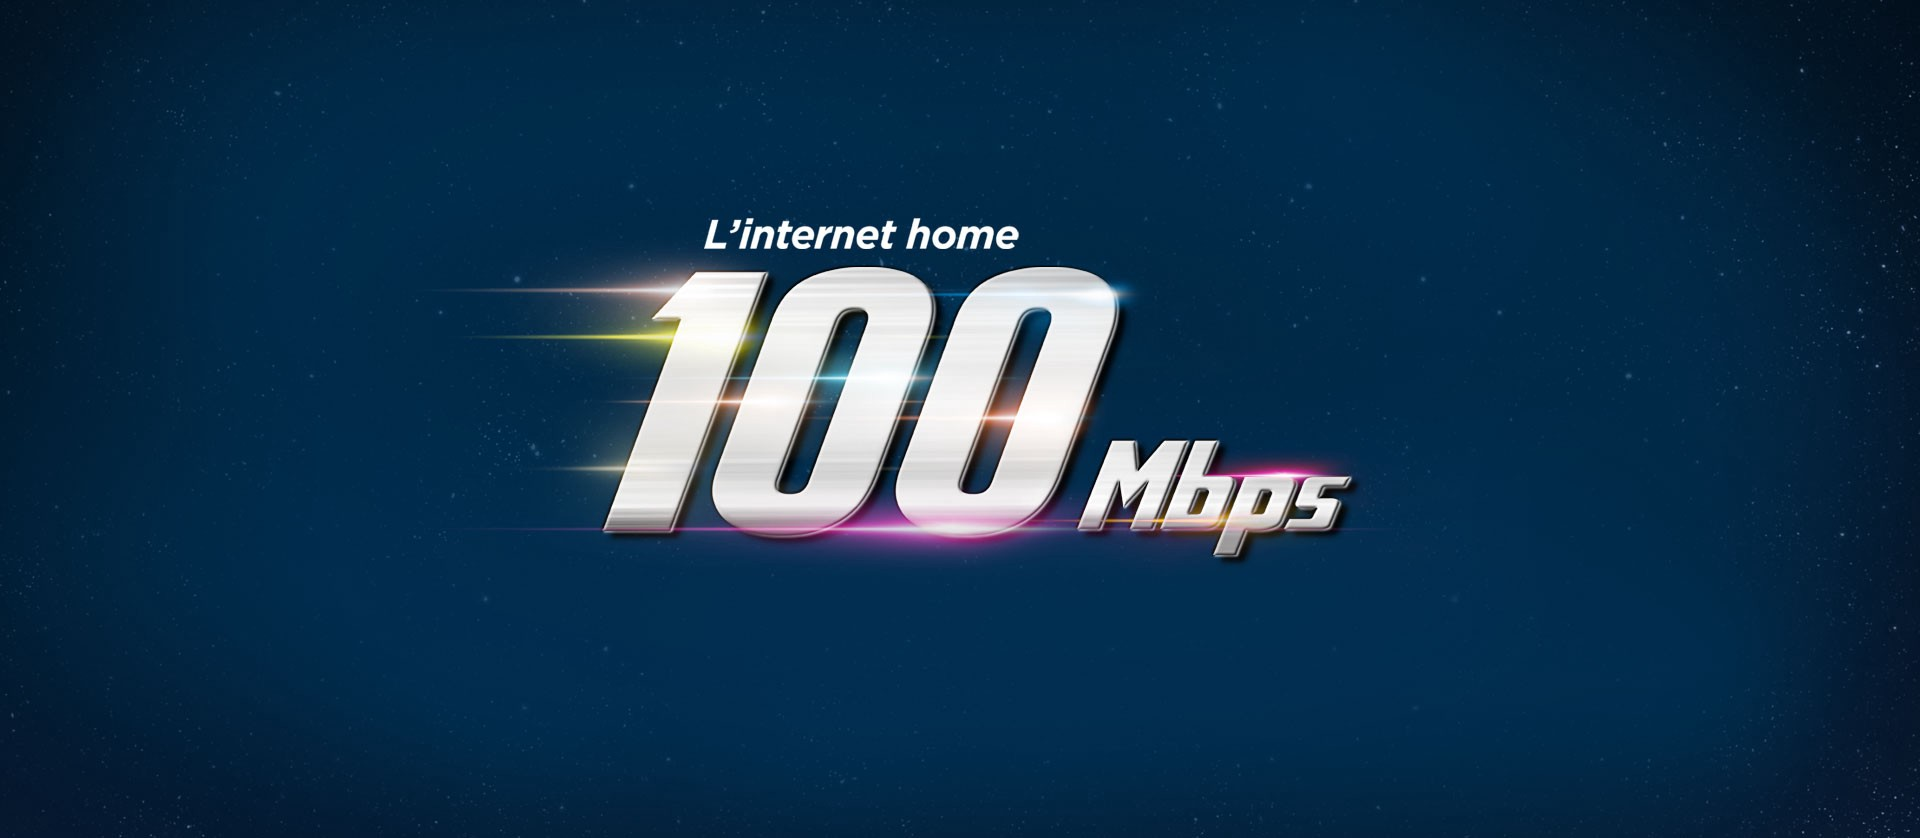 100mbit S Internet In Mauritius What S Next By Loganaden Velvindron Medium